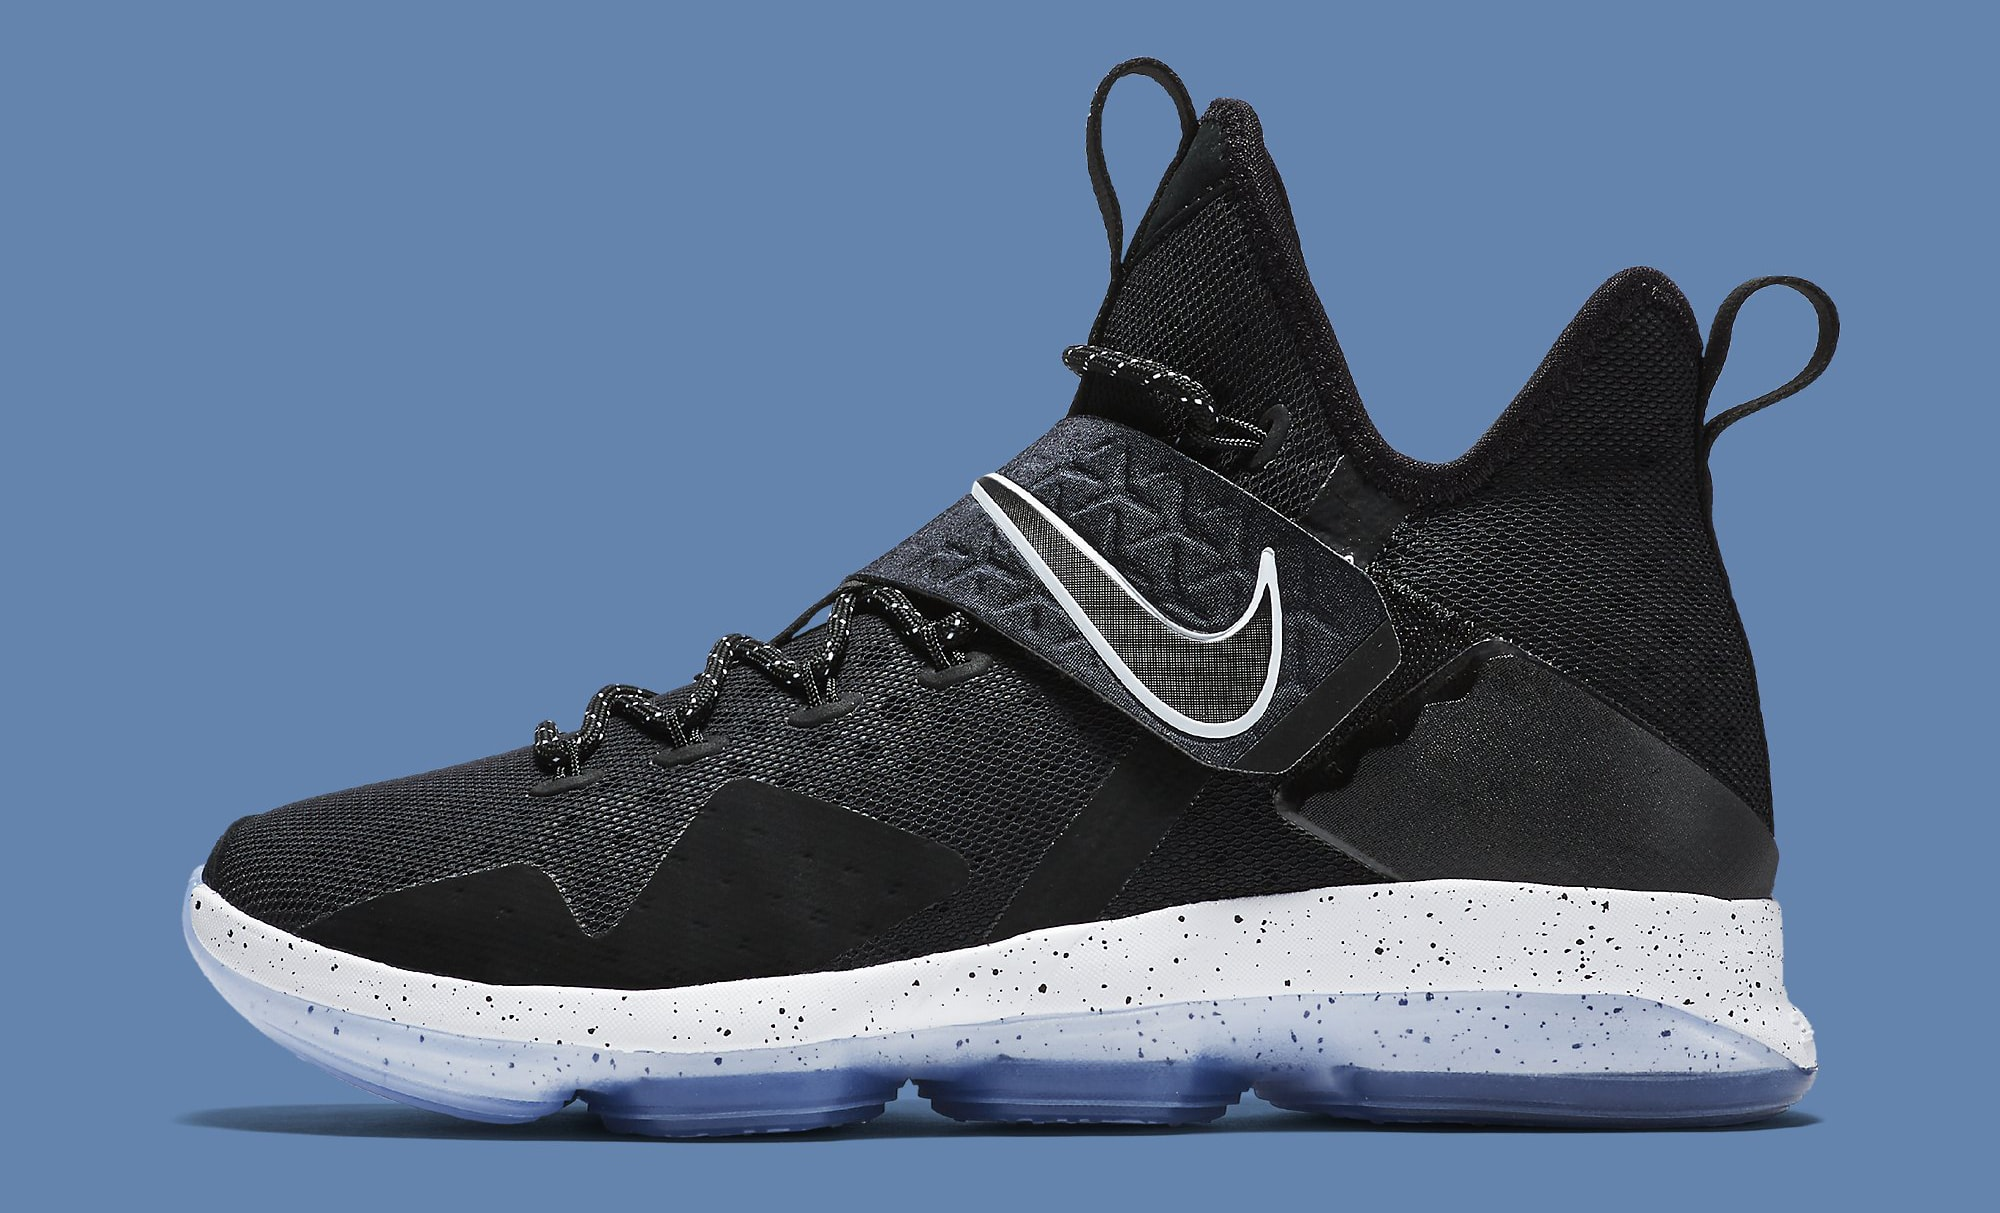 finest selection 61f73 d3ddf Black Ice Nike LeBron 14 921084-002 Profile